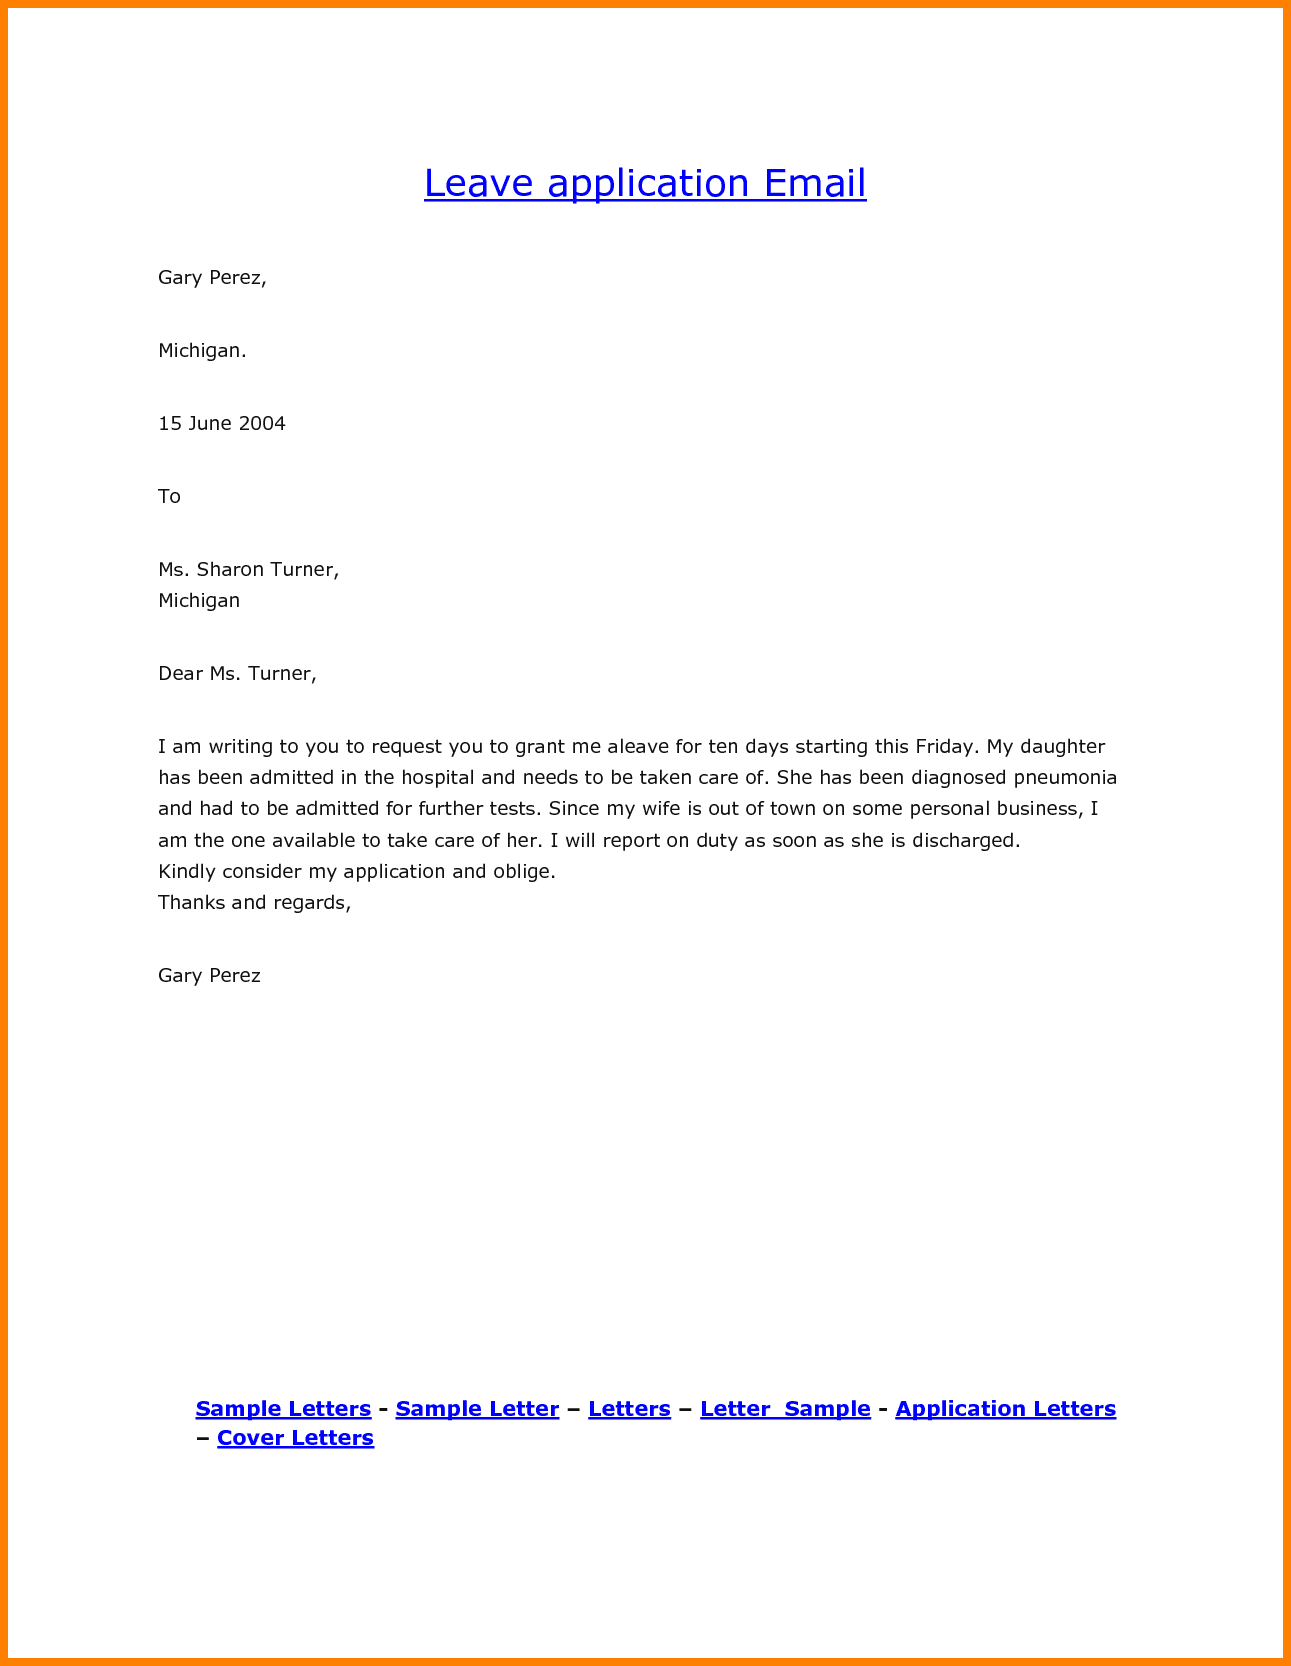 Leave Request Email Sample | scrumps